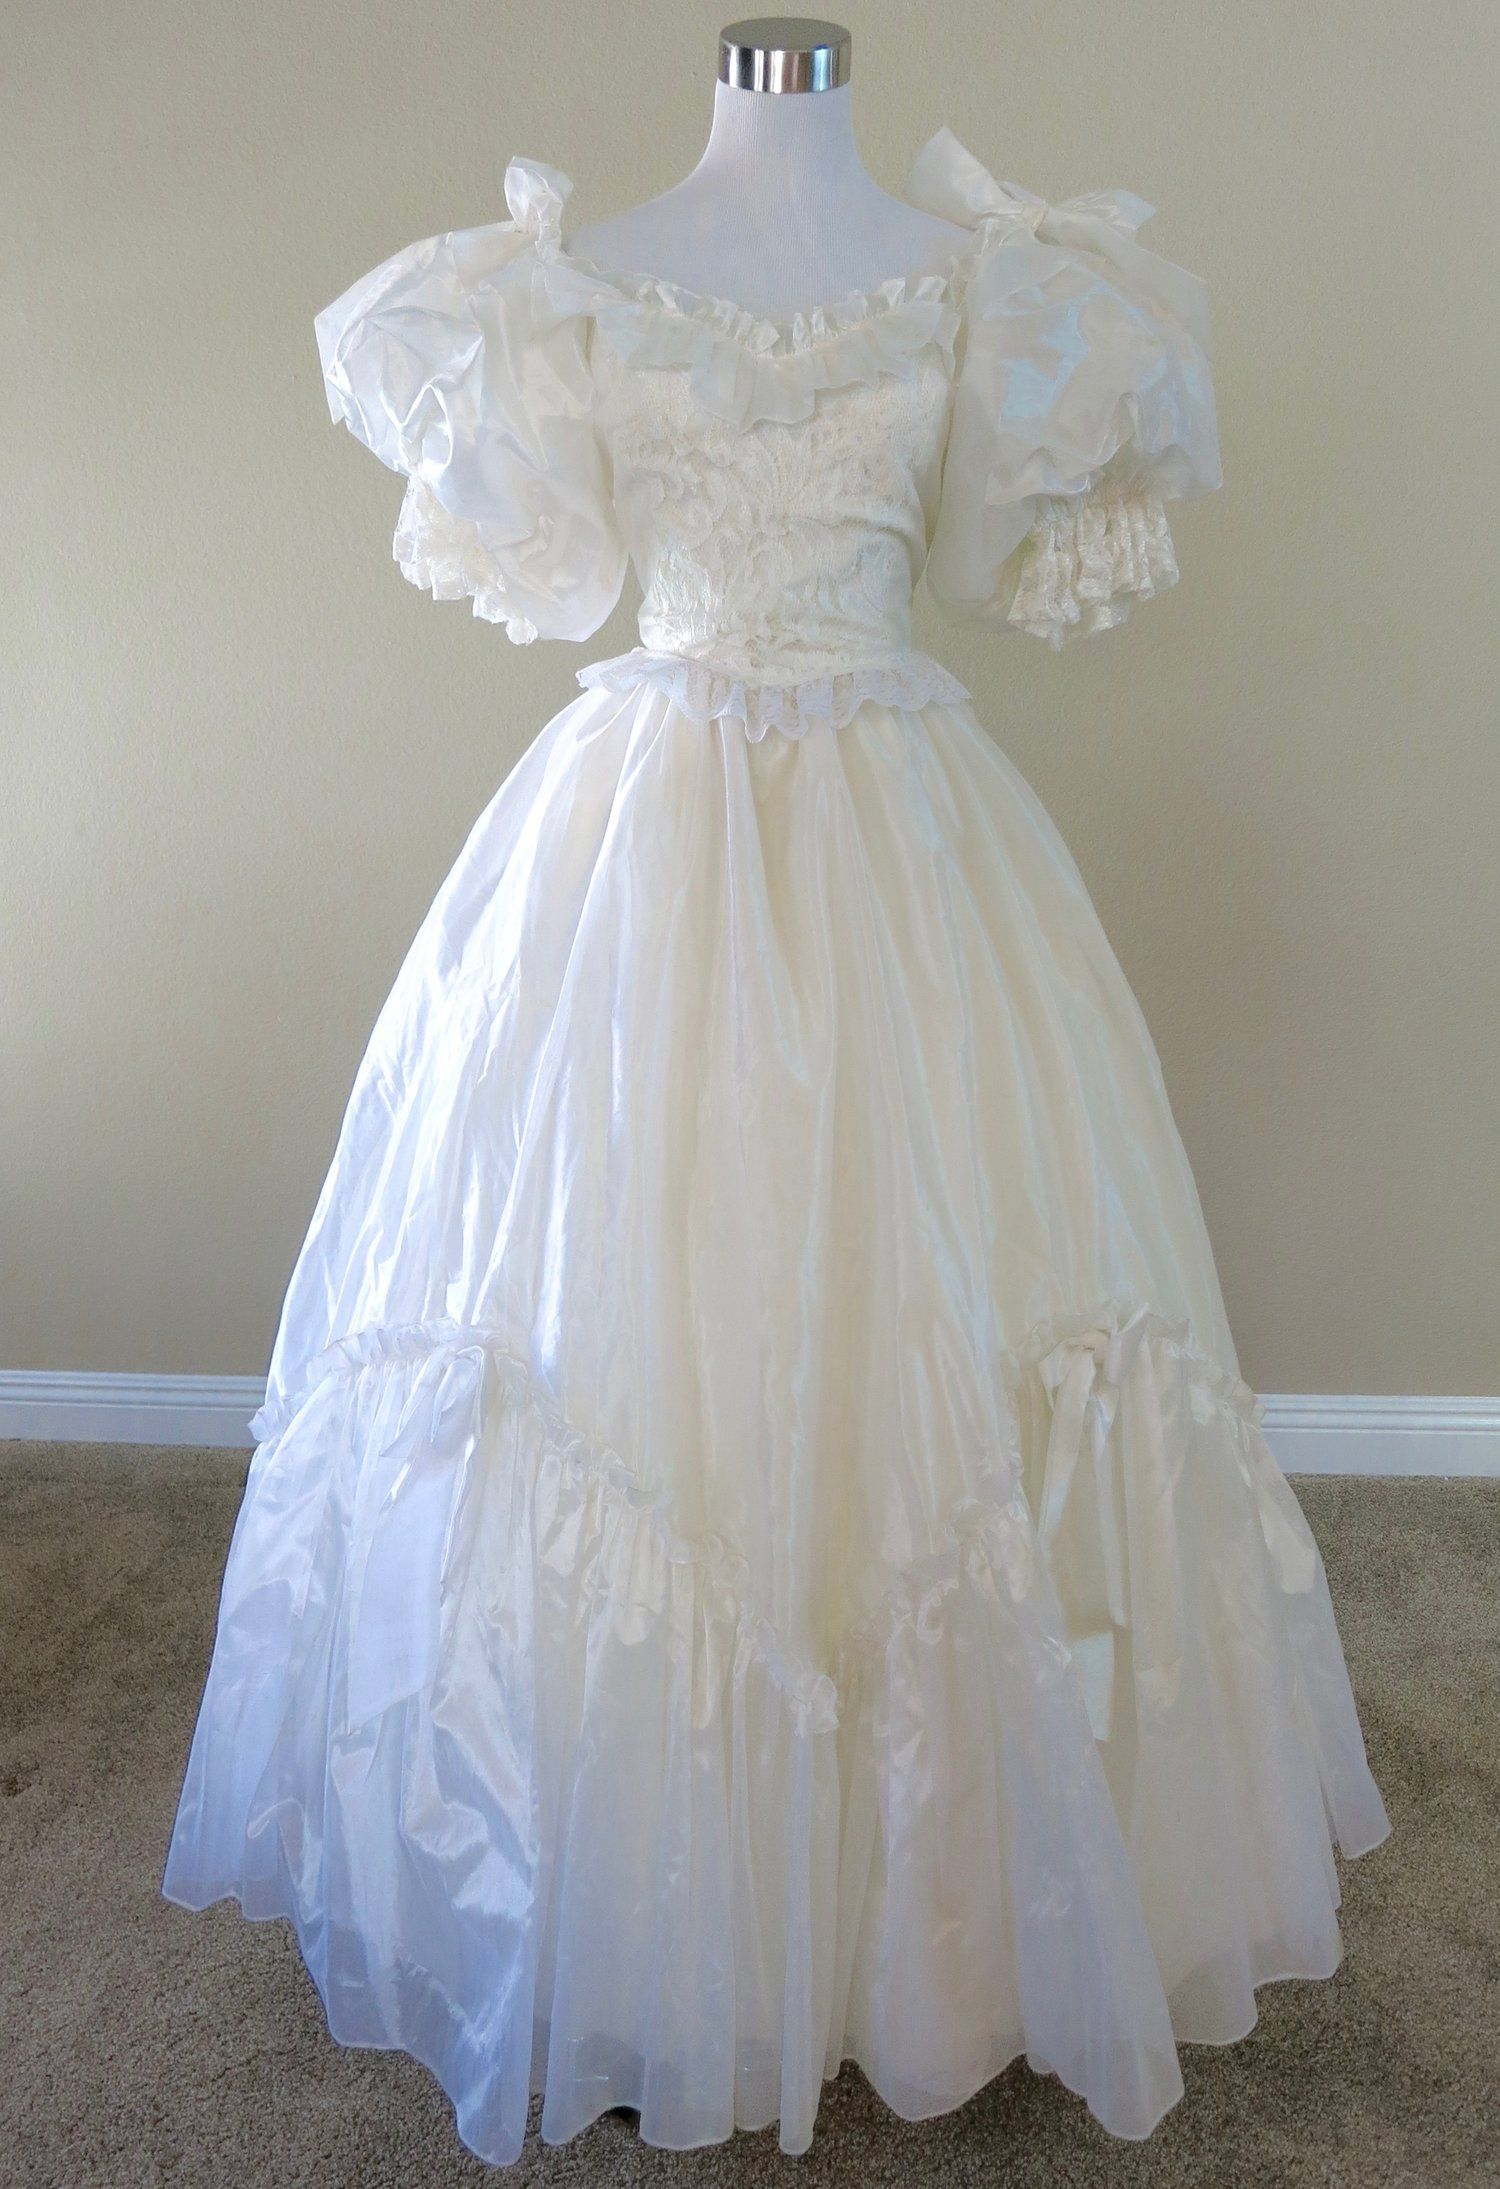 IMG_11.jpg  Southern belle dress, Ball gowns, Belle costume